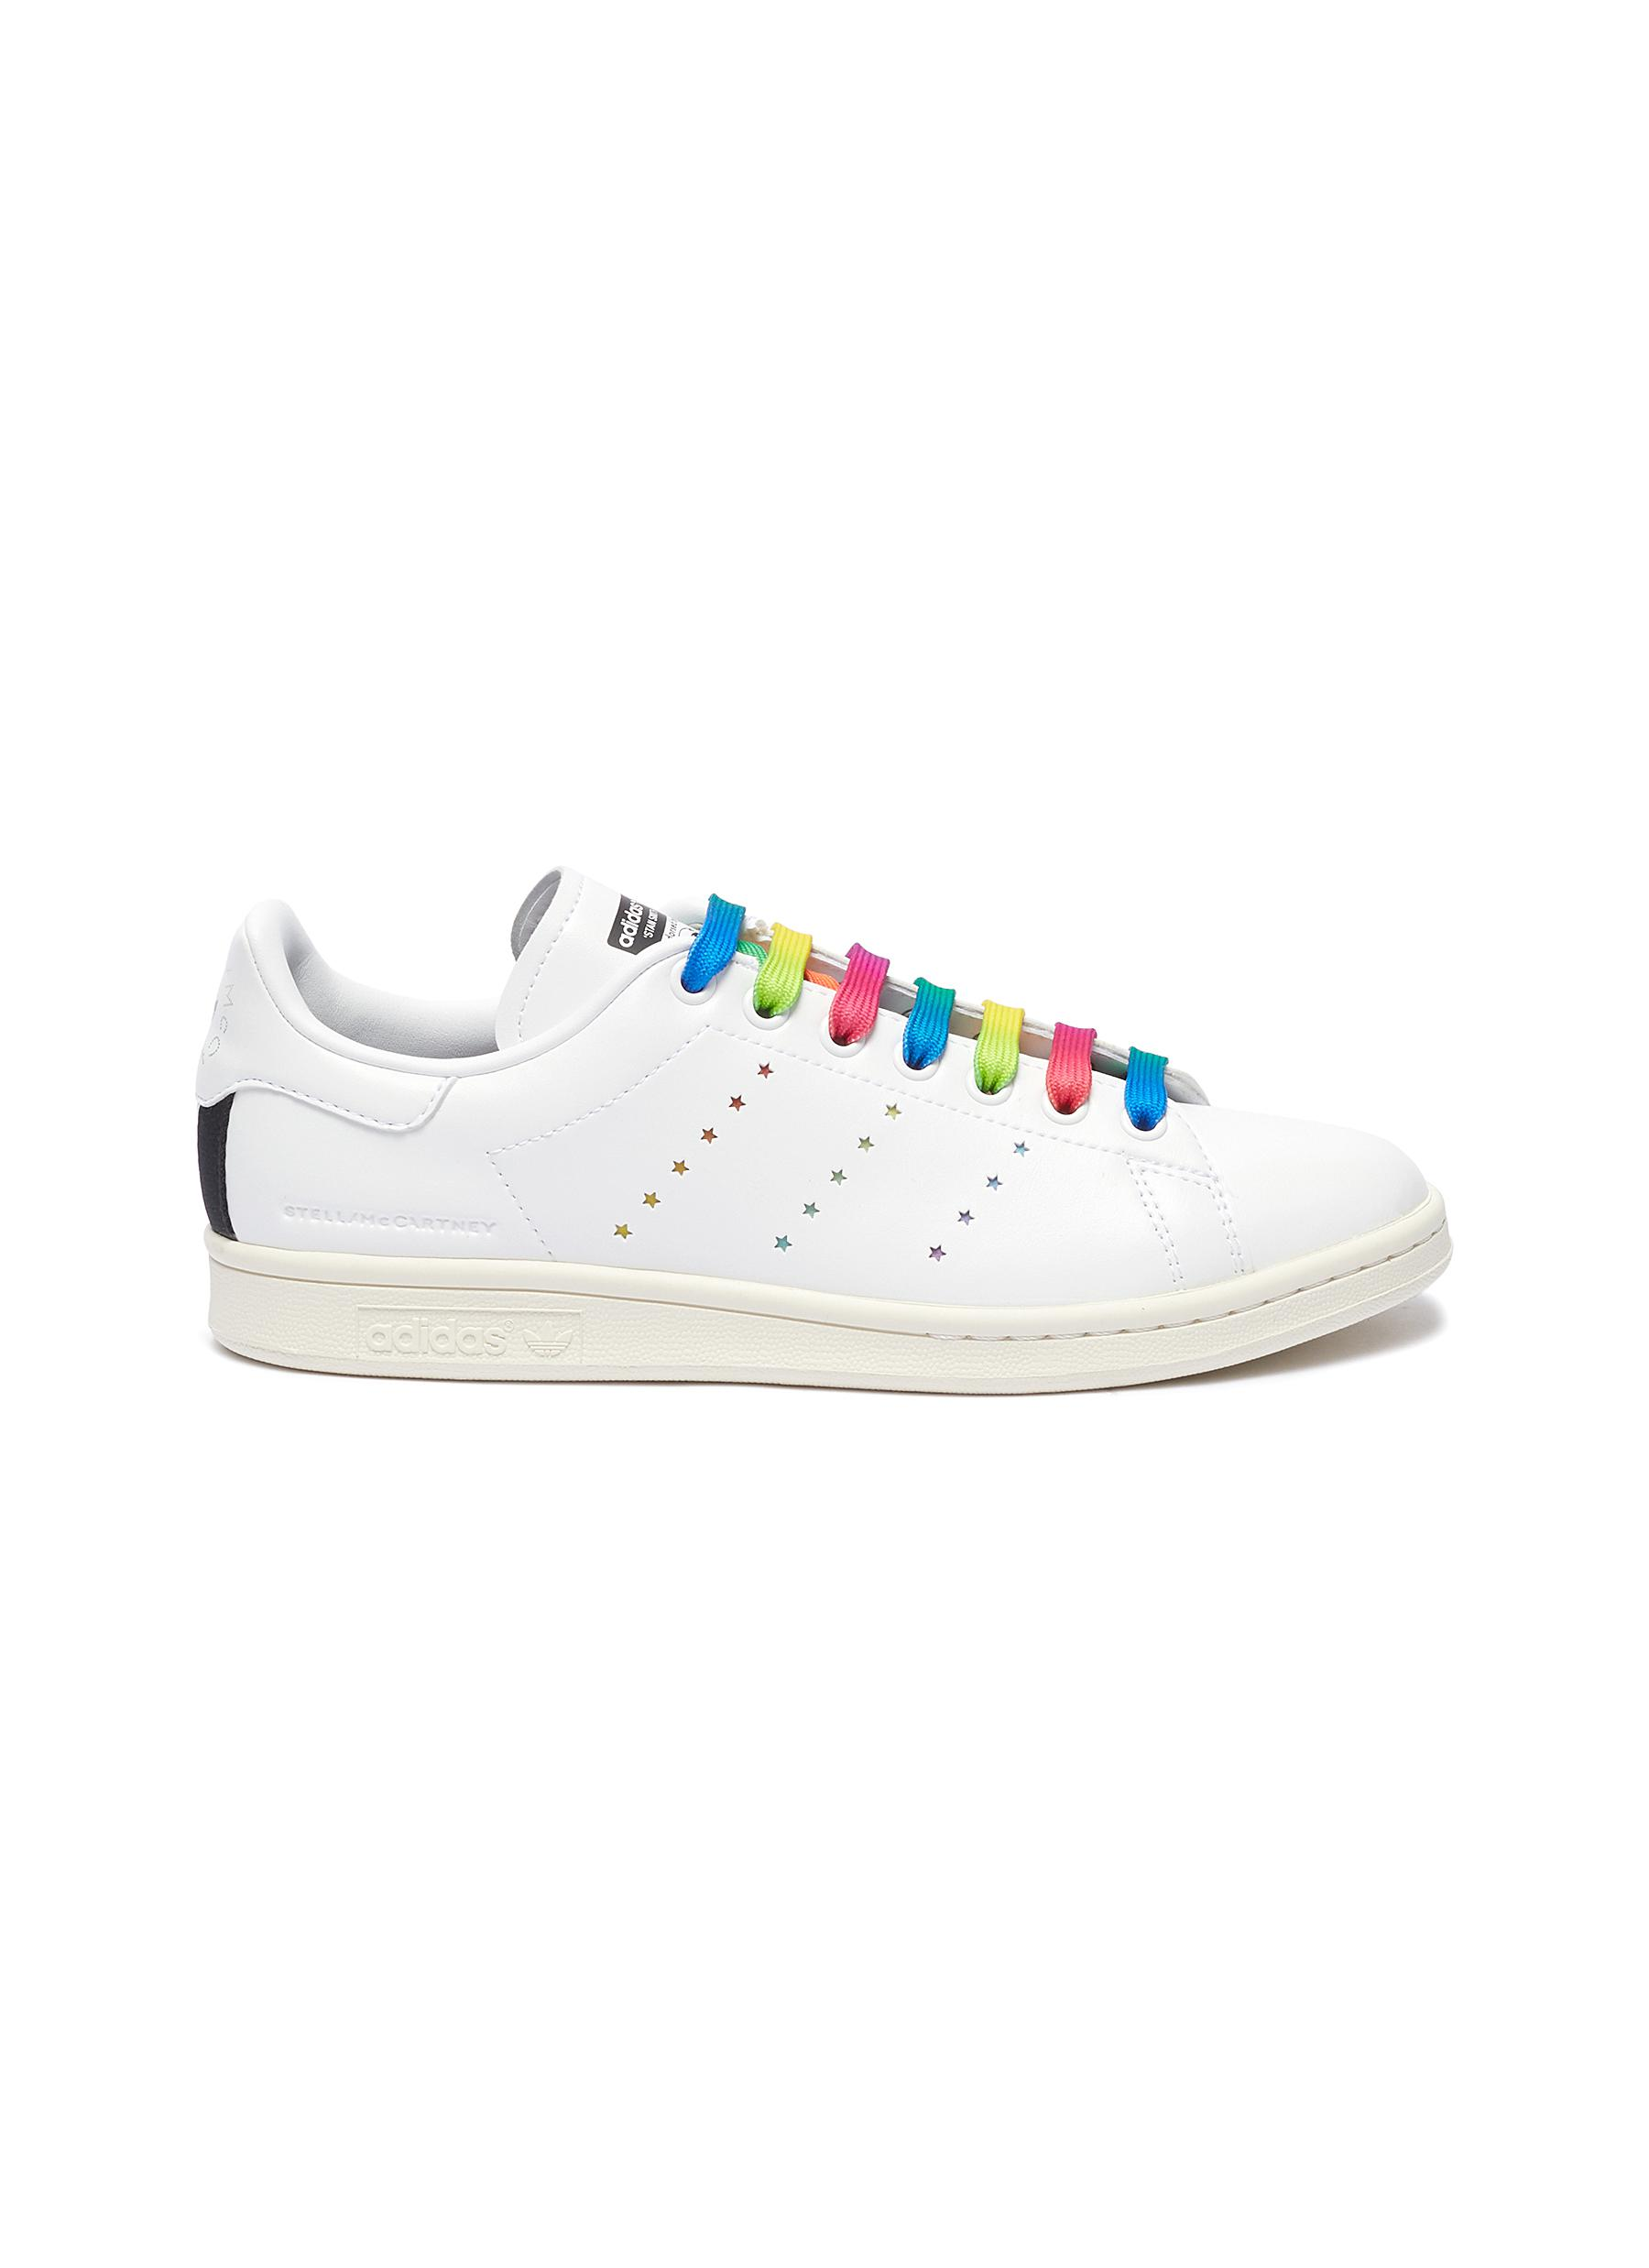 Stella Mccartney Sneakers x Air Originals Stan Smith rainbow laces sneakers